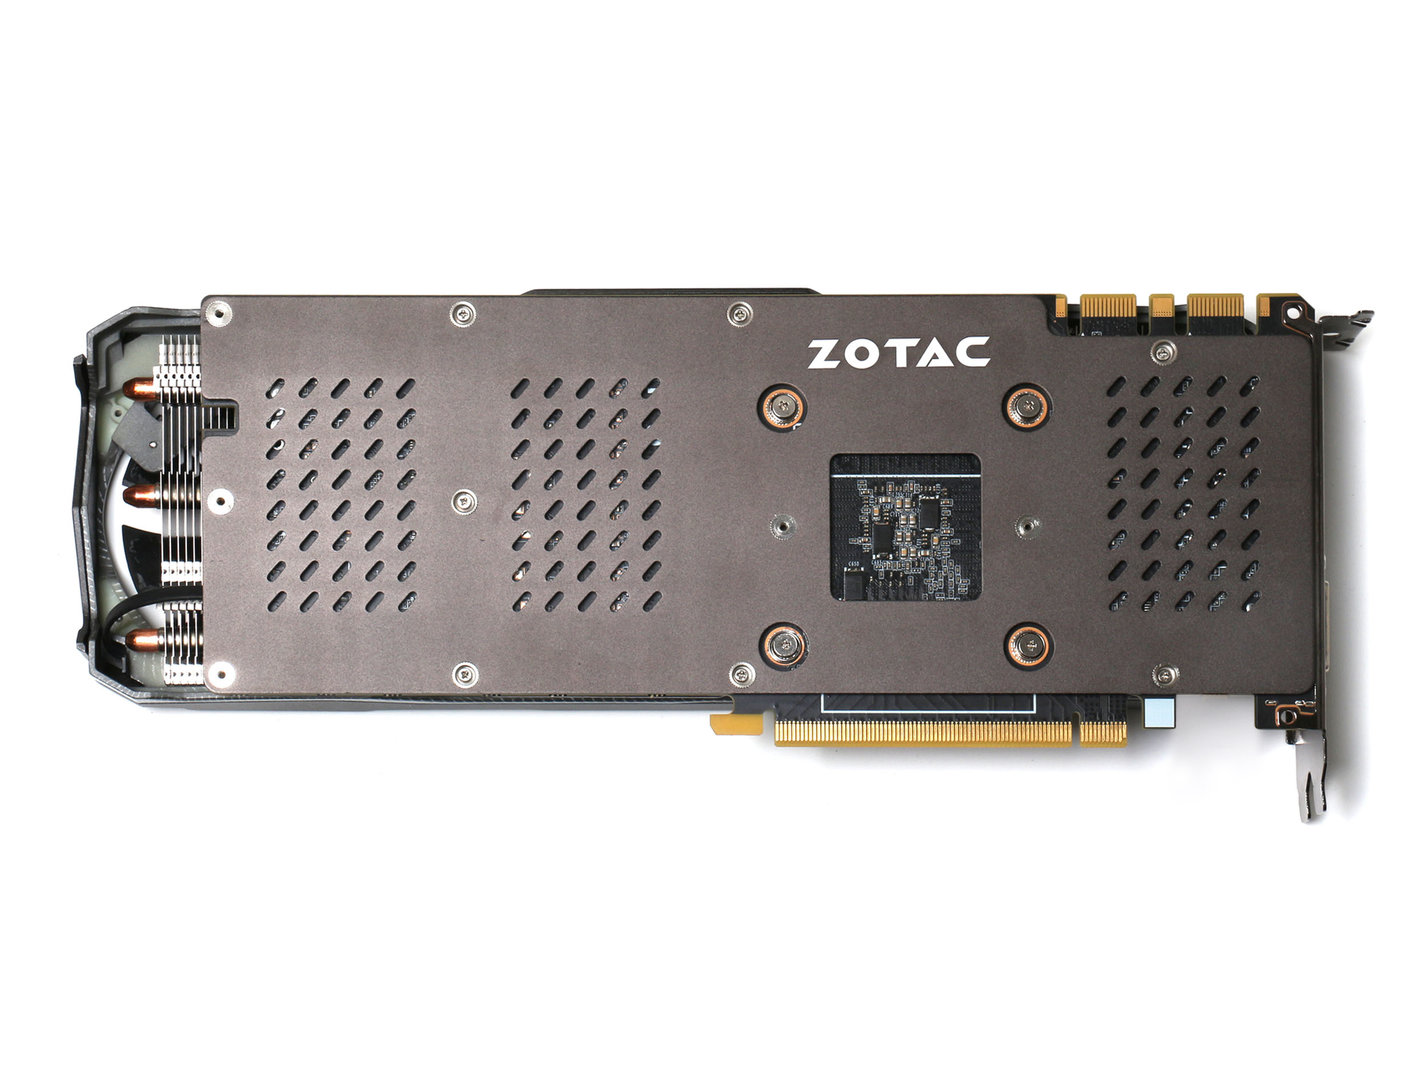 Zotac GeForce GTX 970 AMP! Extreme Core Edition